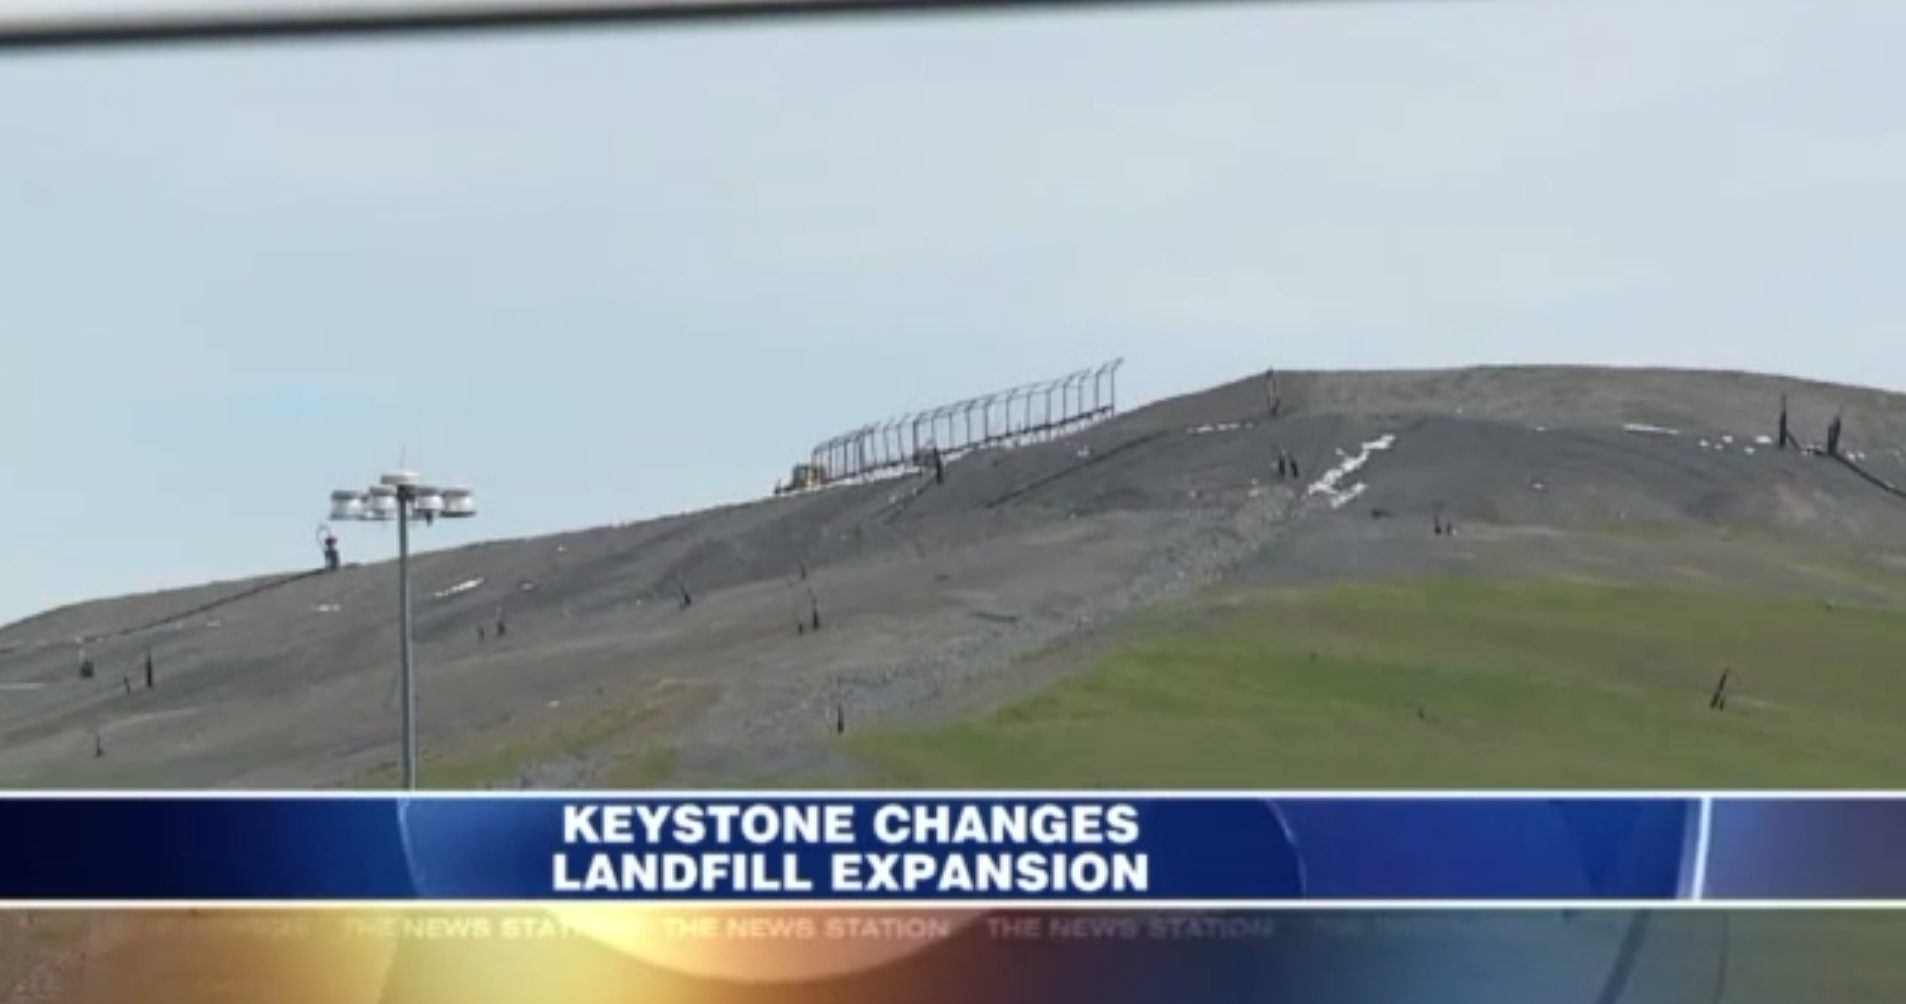 The Keystone Sanitary Landfill